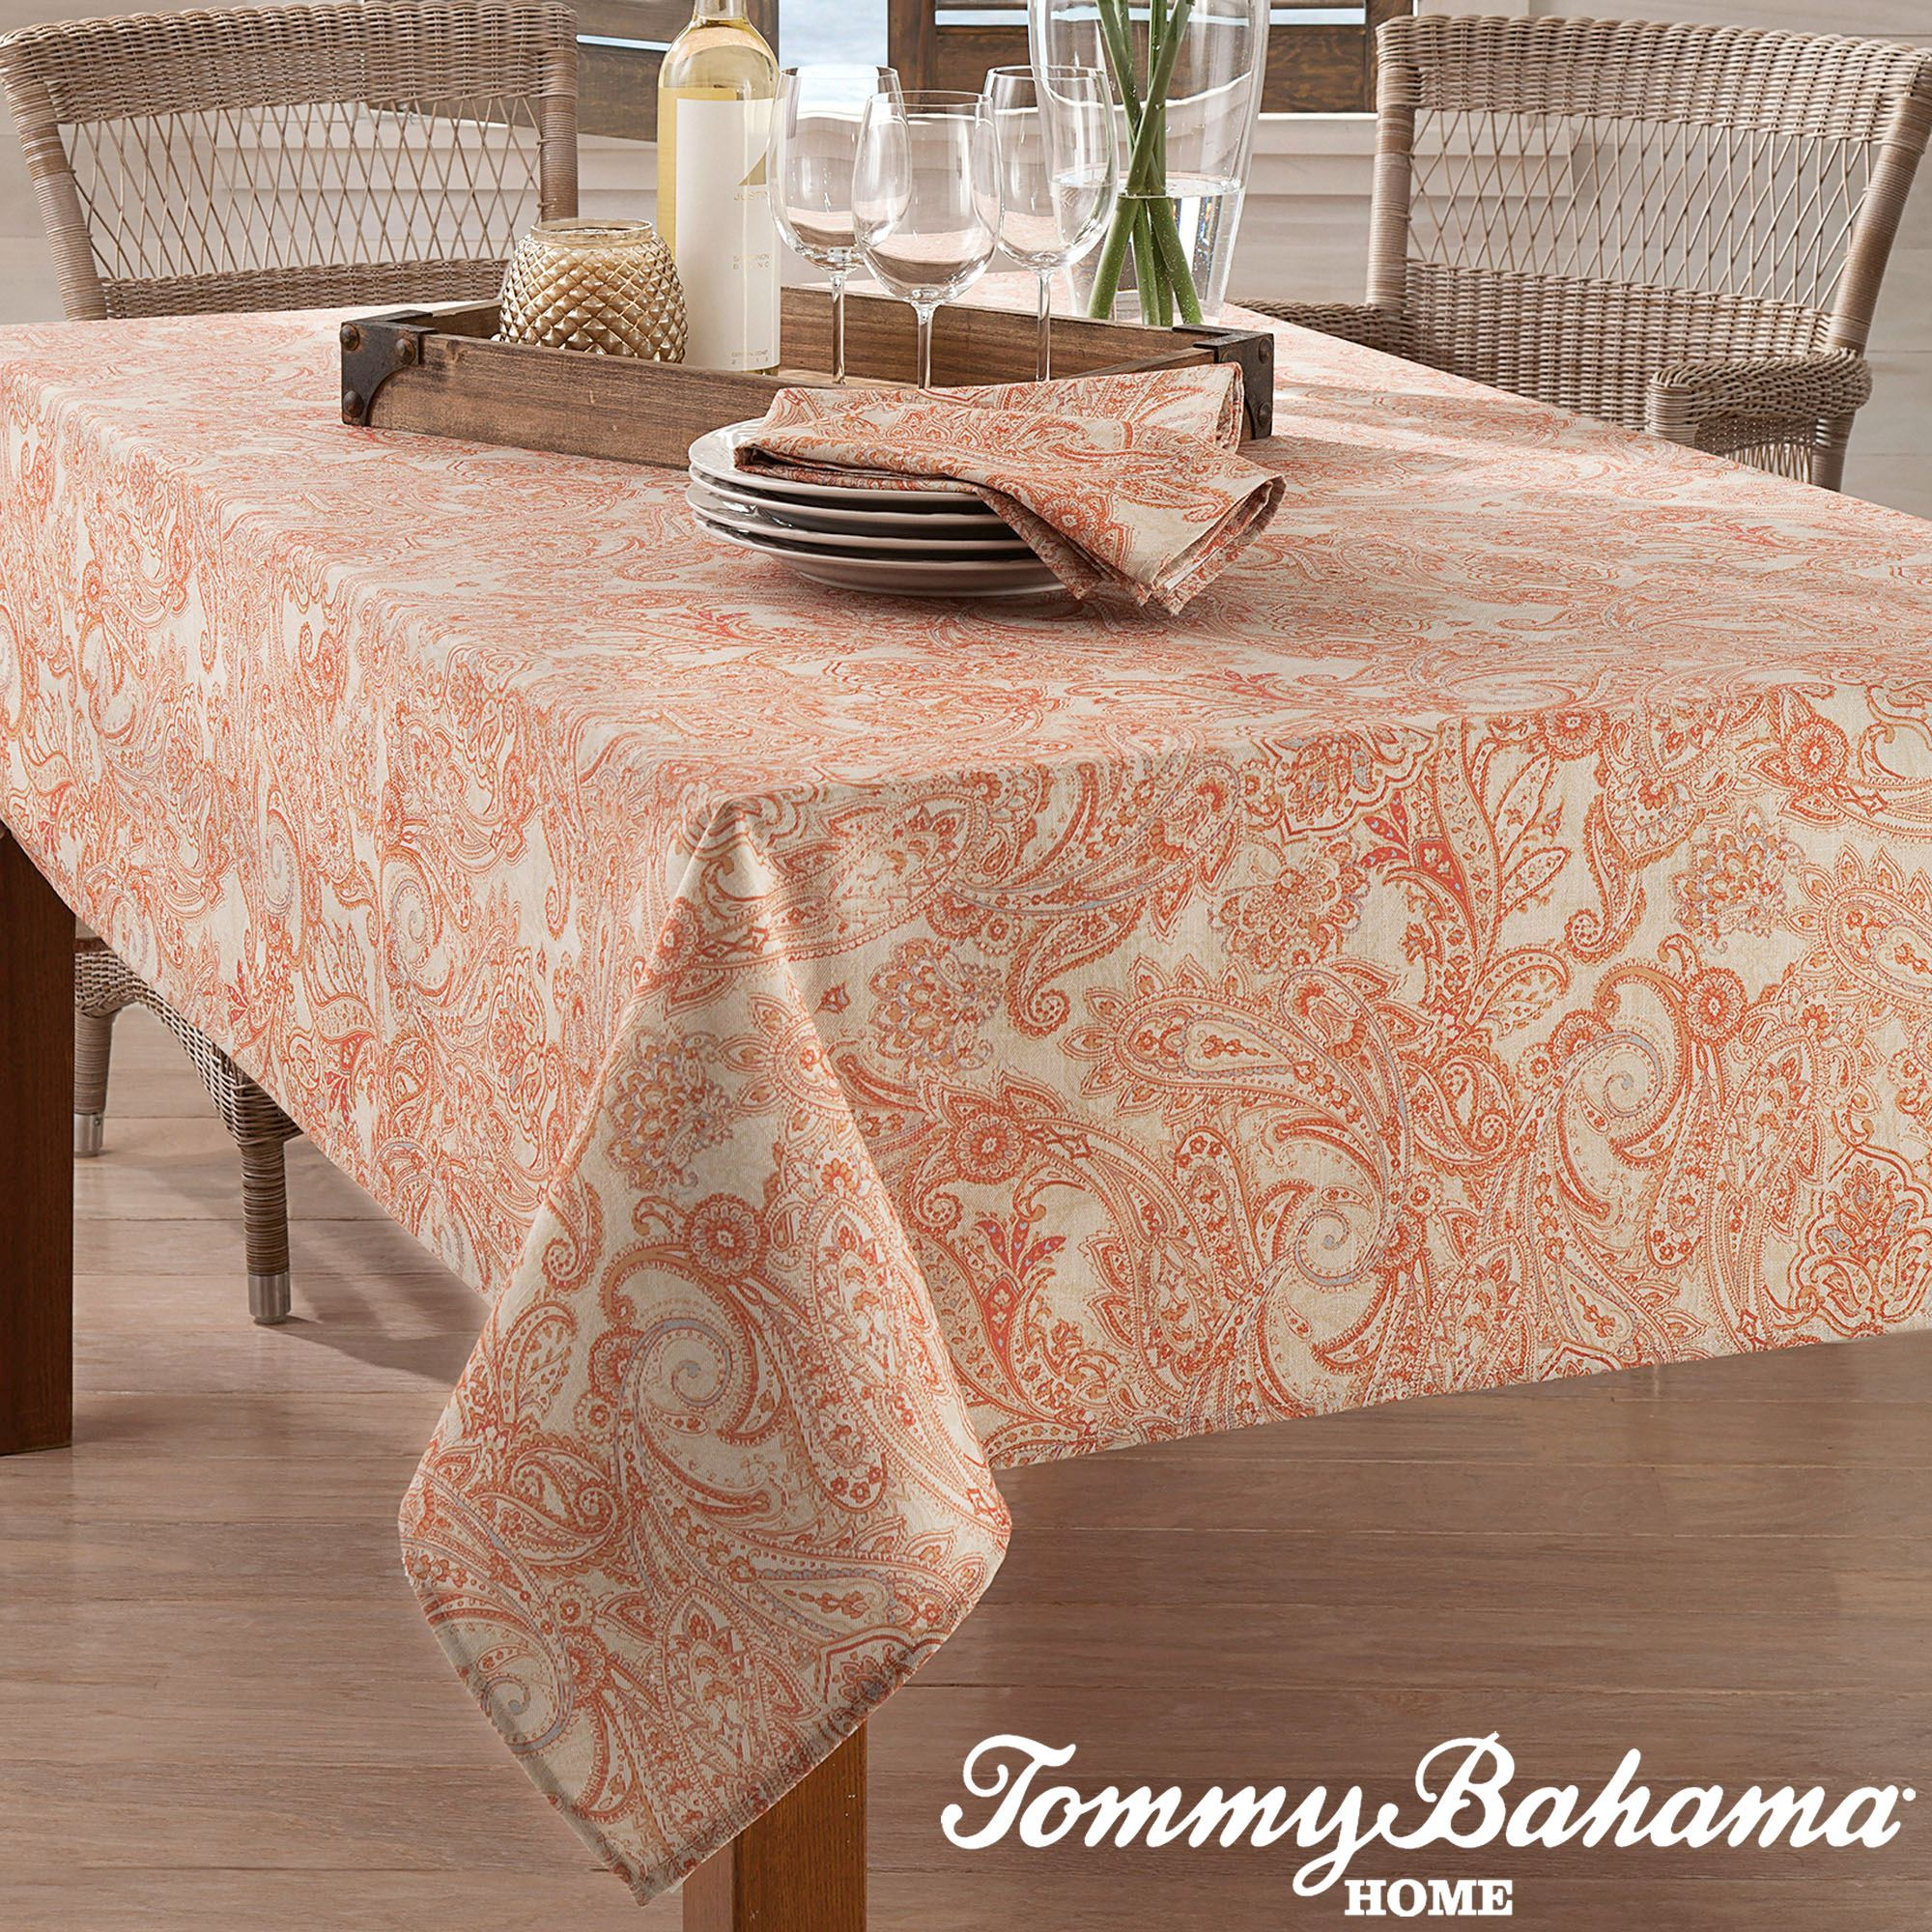 East India Paisley Table Linens By Tommy Bahama